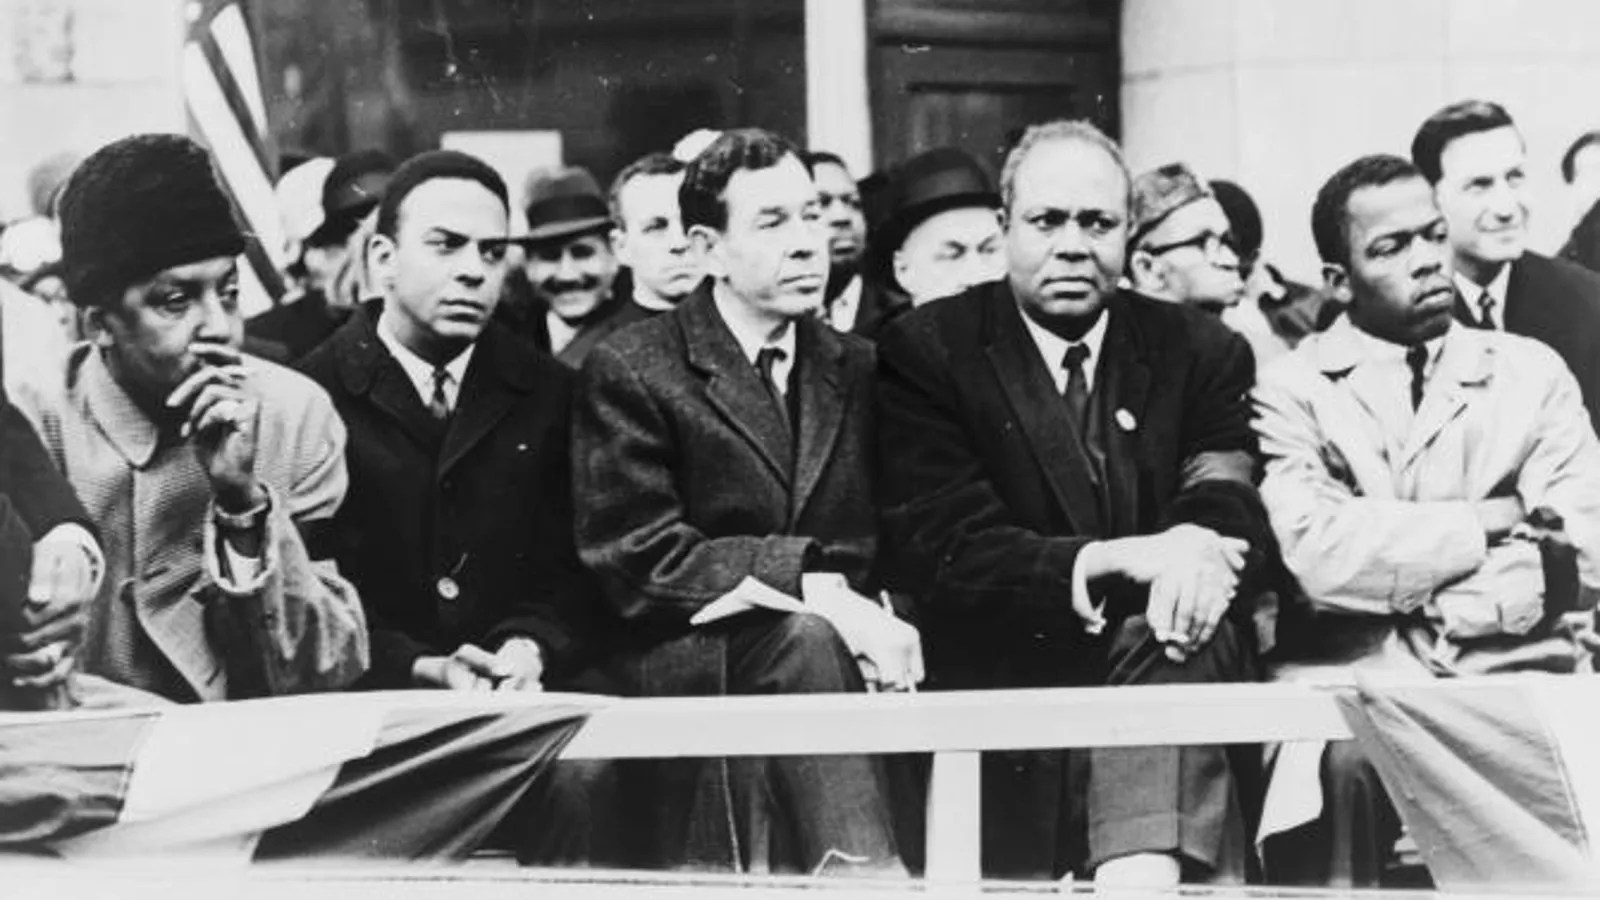 Civil Rights Leaders Who Changed History